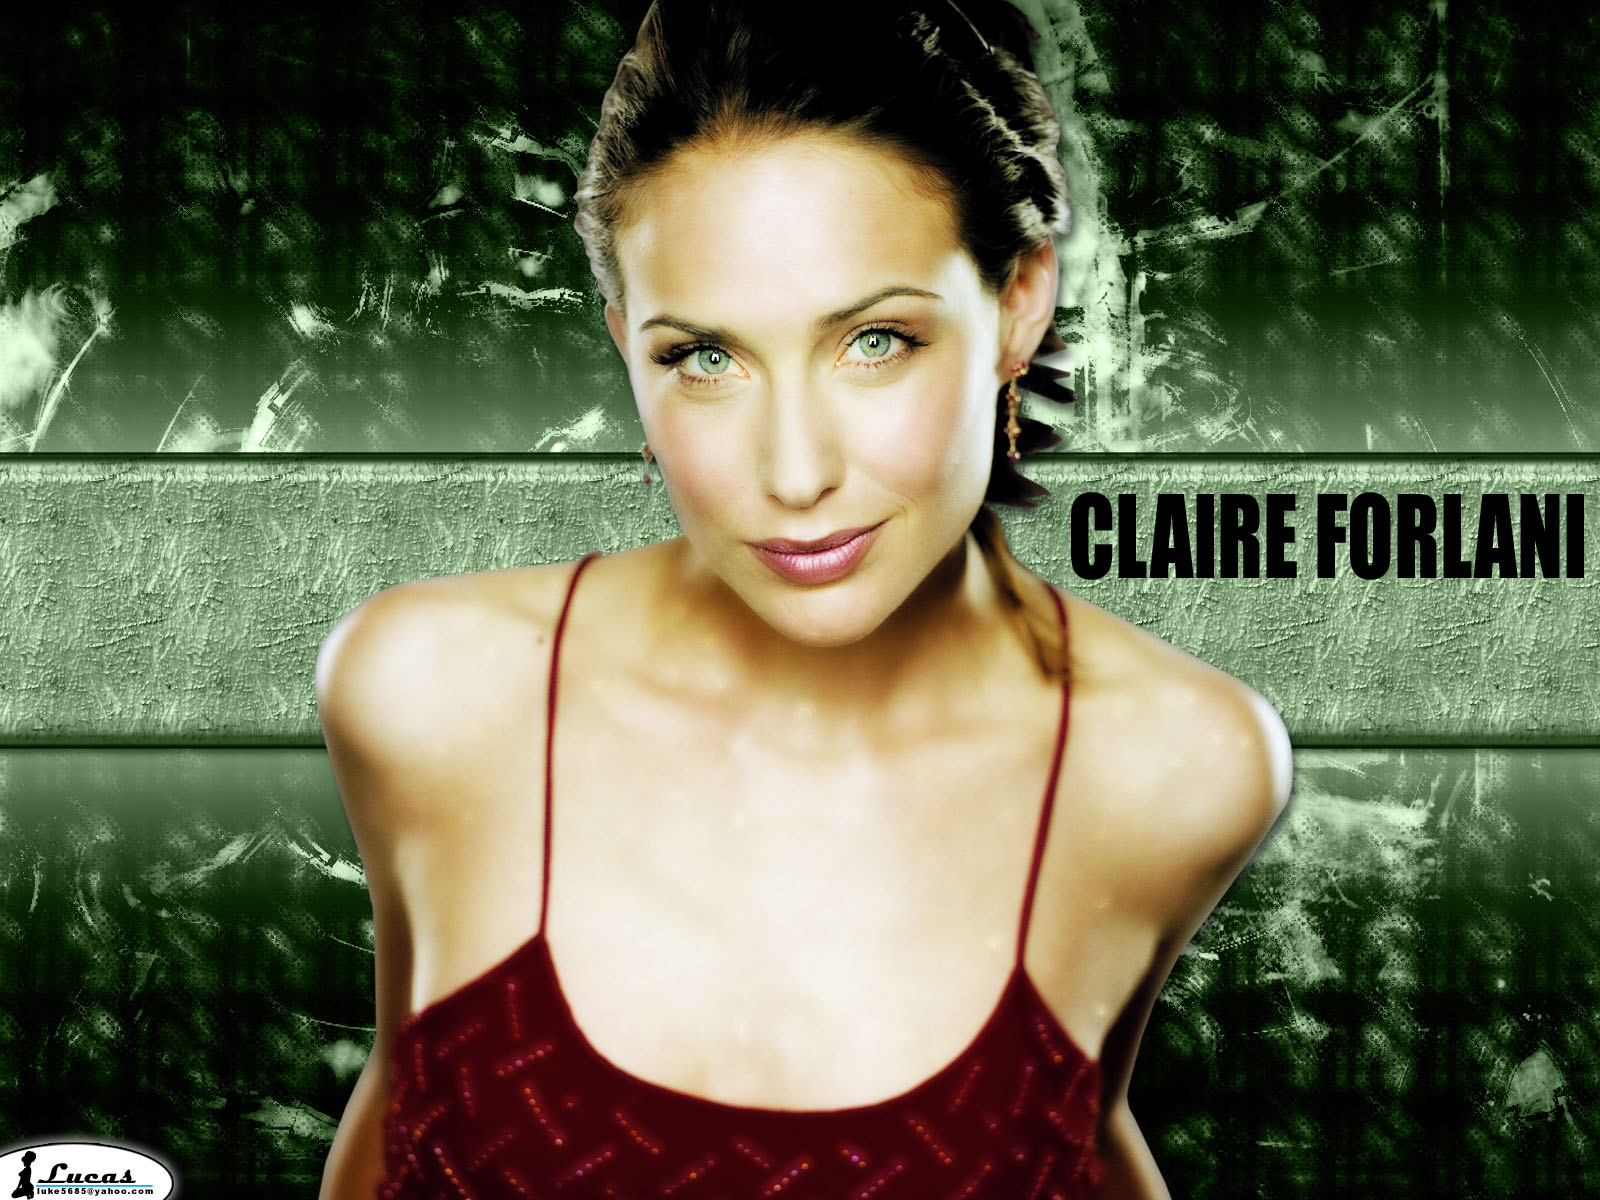 http://3.bp.blogspot.com/-DjCAGrLz8EY/TldXPov627I/AAAAAAAAF1A/UaNtfKyHOn0/s1600/Hot+Claire+Forlani+Pictures+%25288%2529.jpg